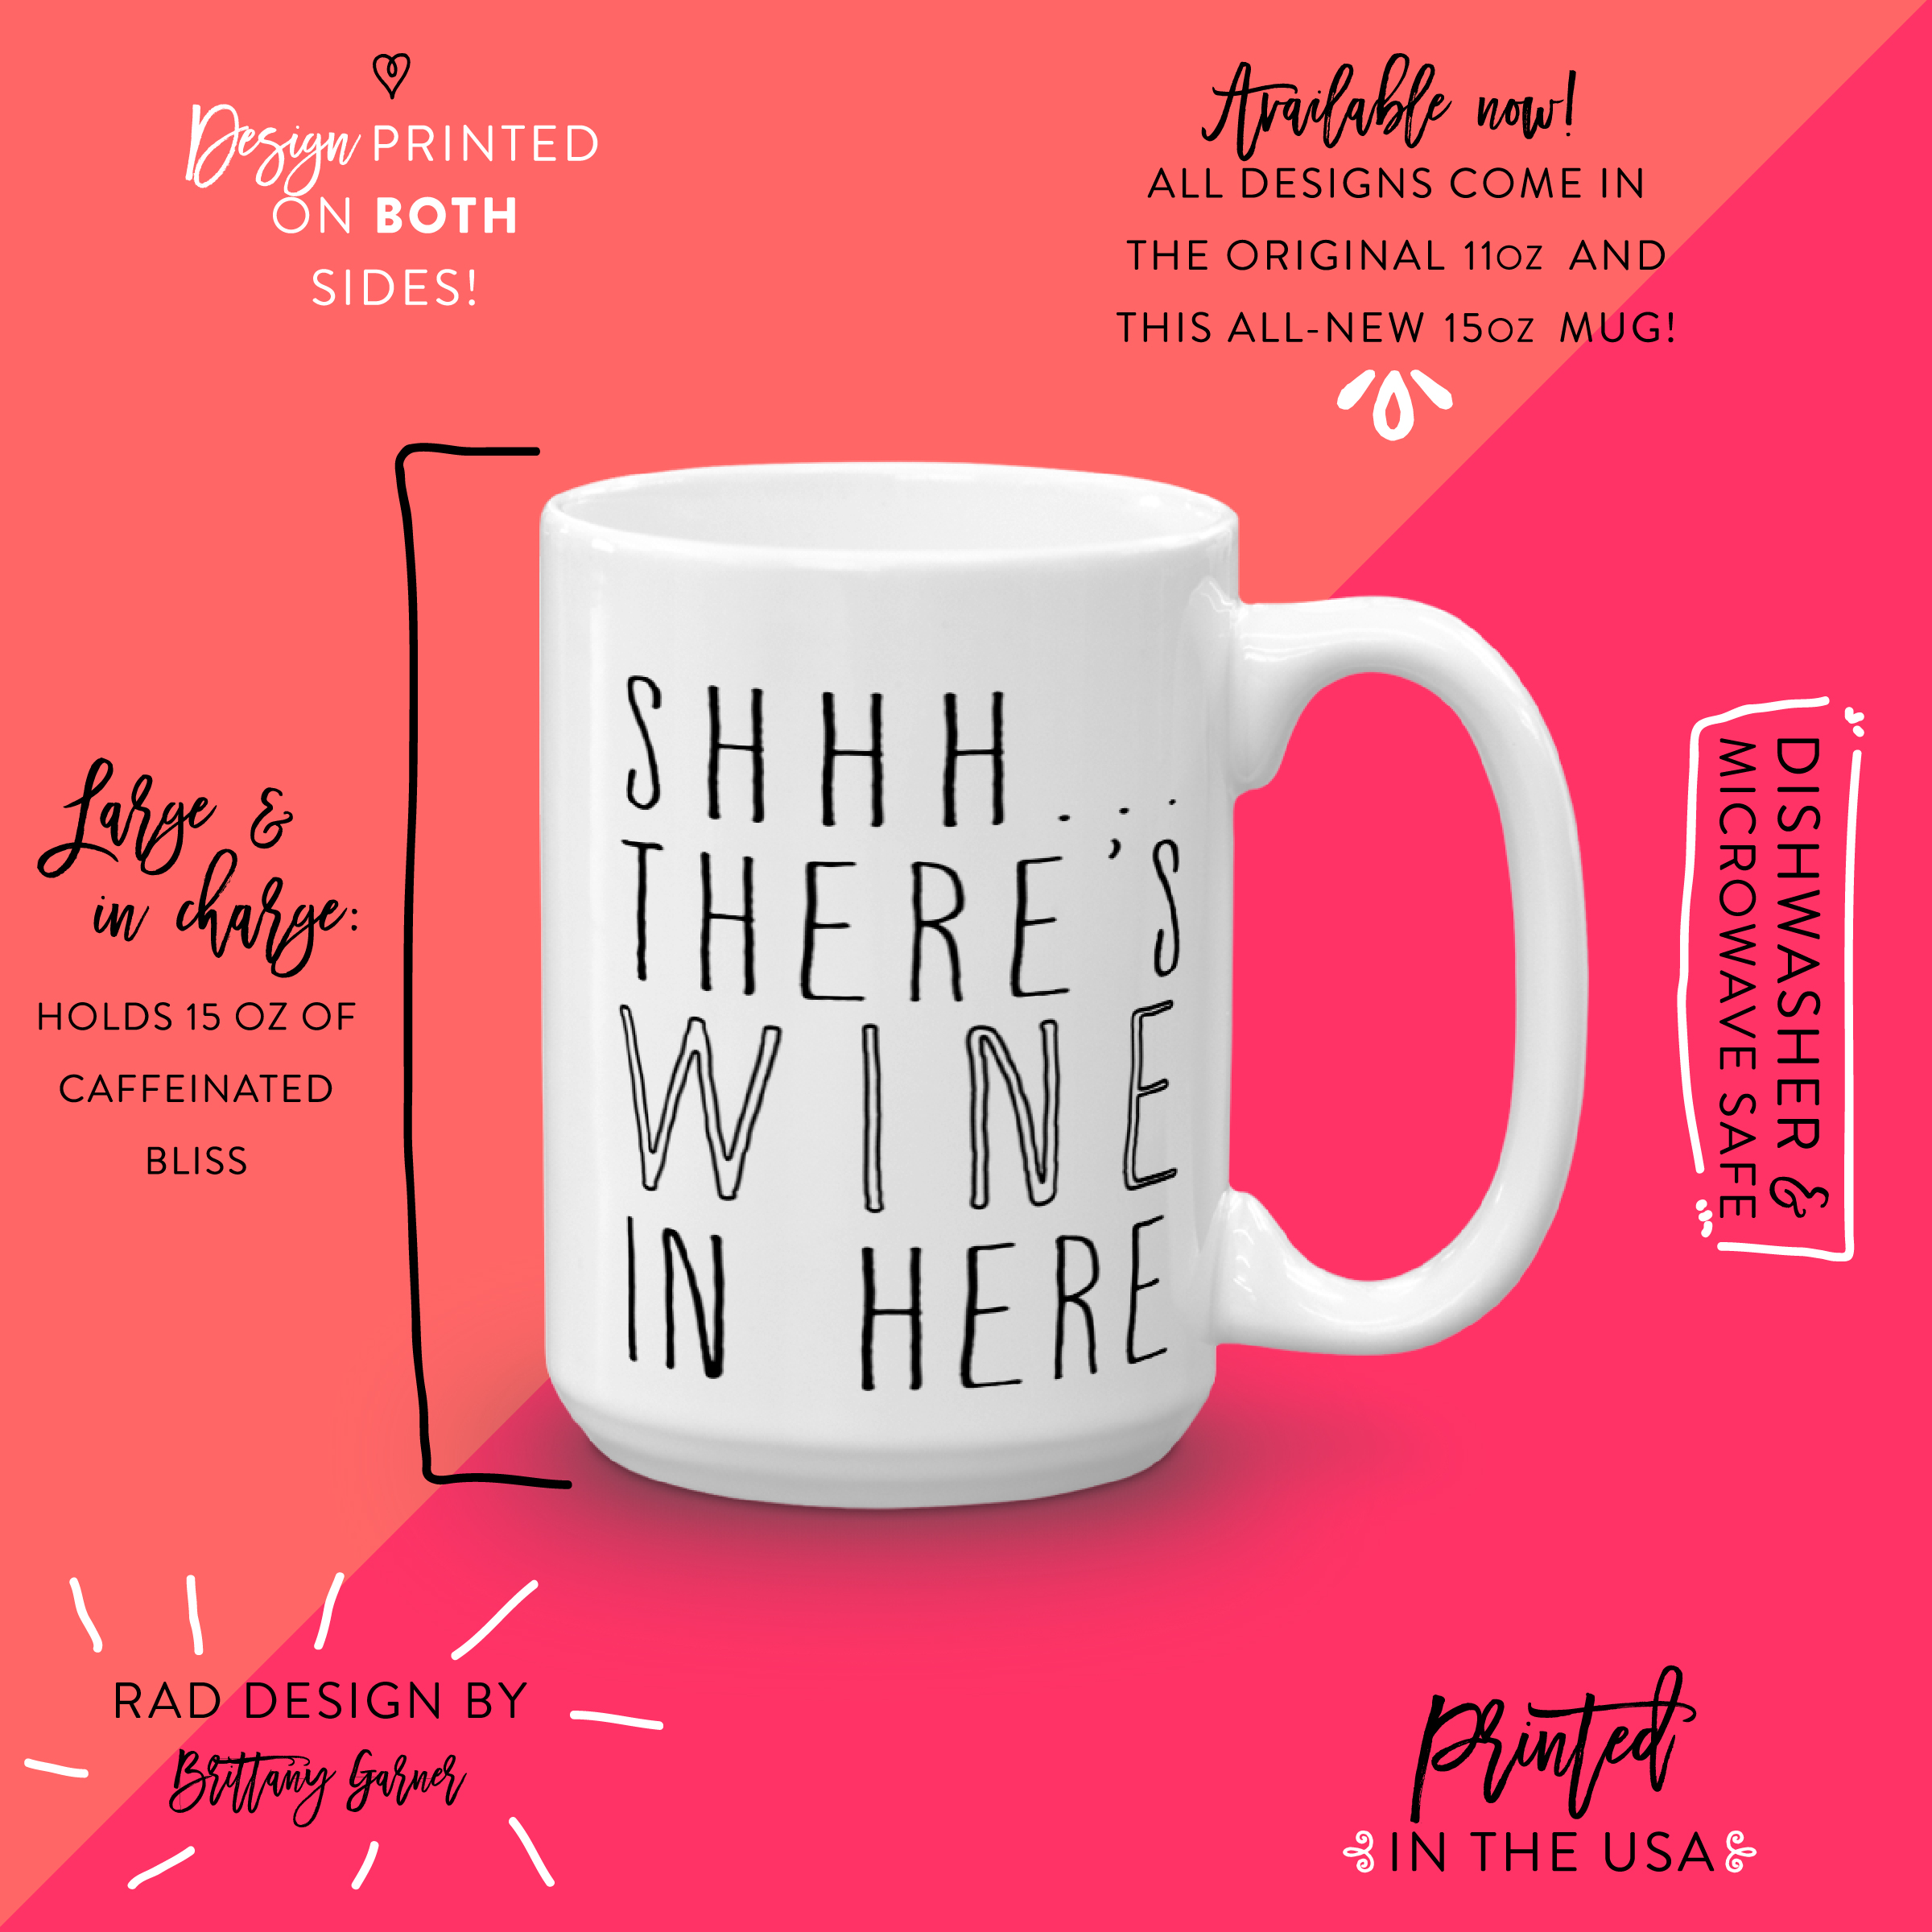 Anatomy of a BGD 15 oz mug